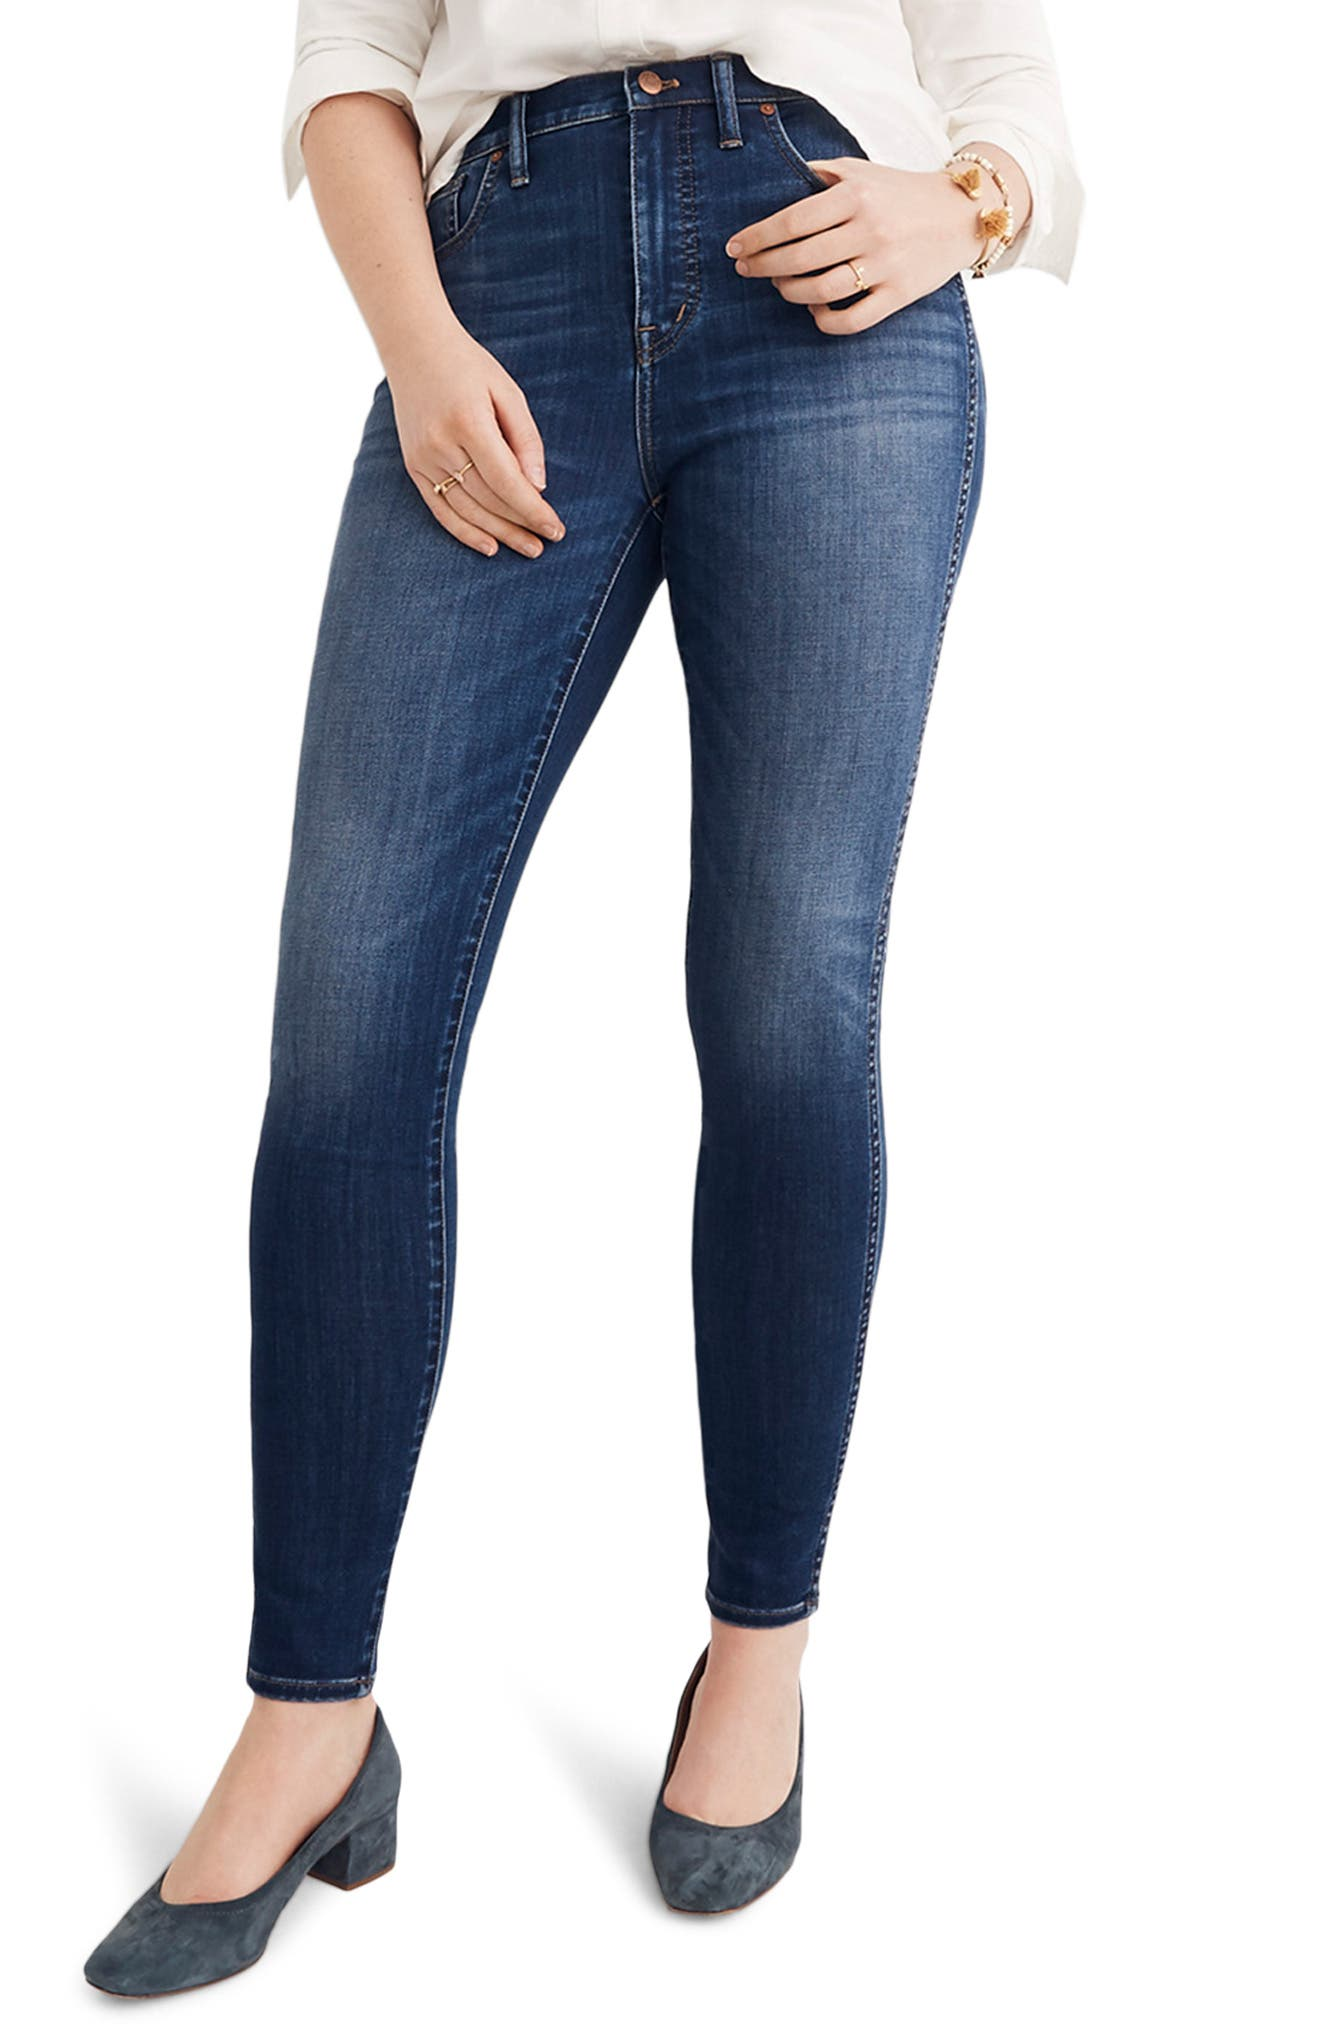 Plus Women's Madewell 10-Inch High Rise Skinny Jeans